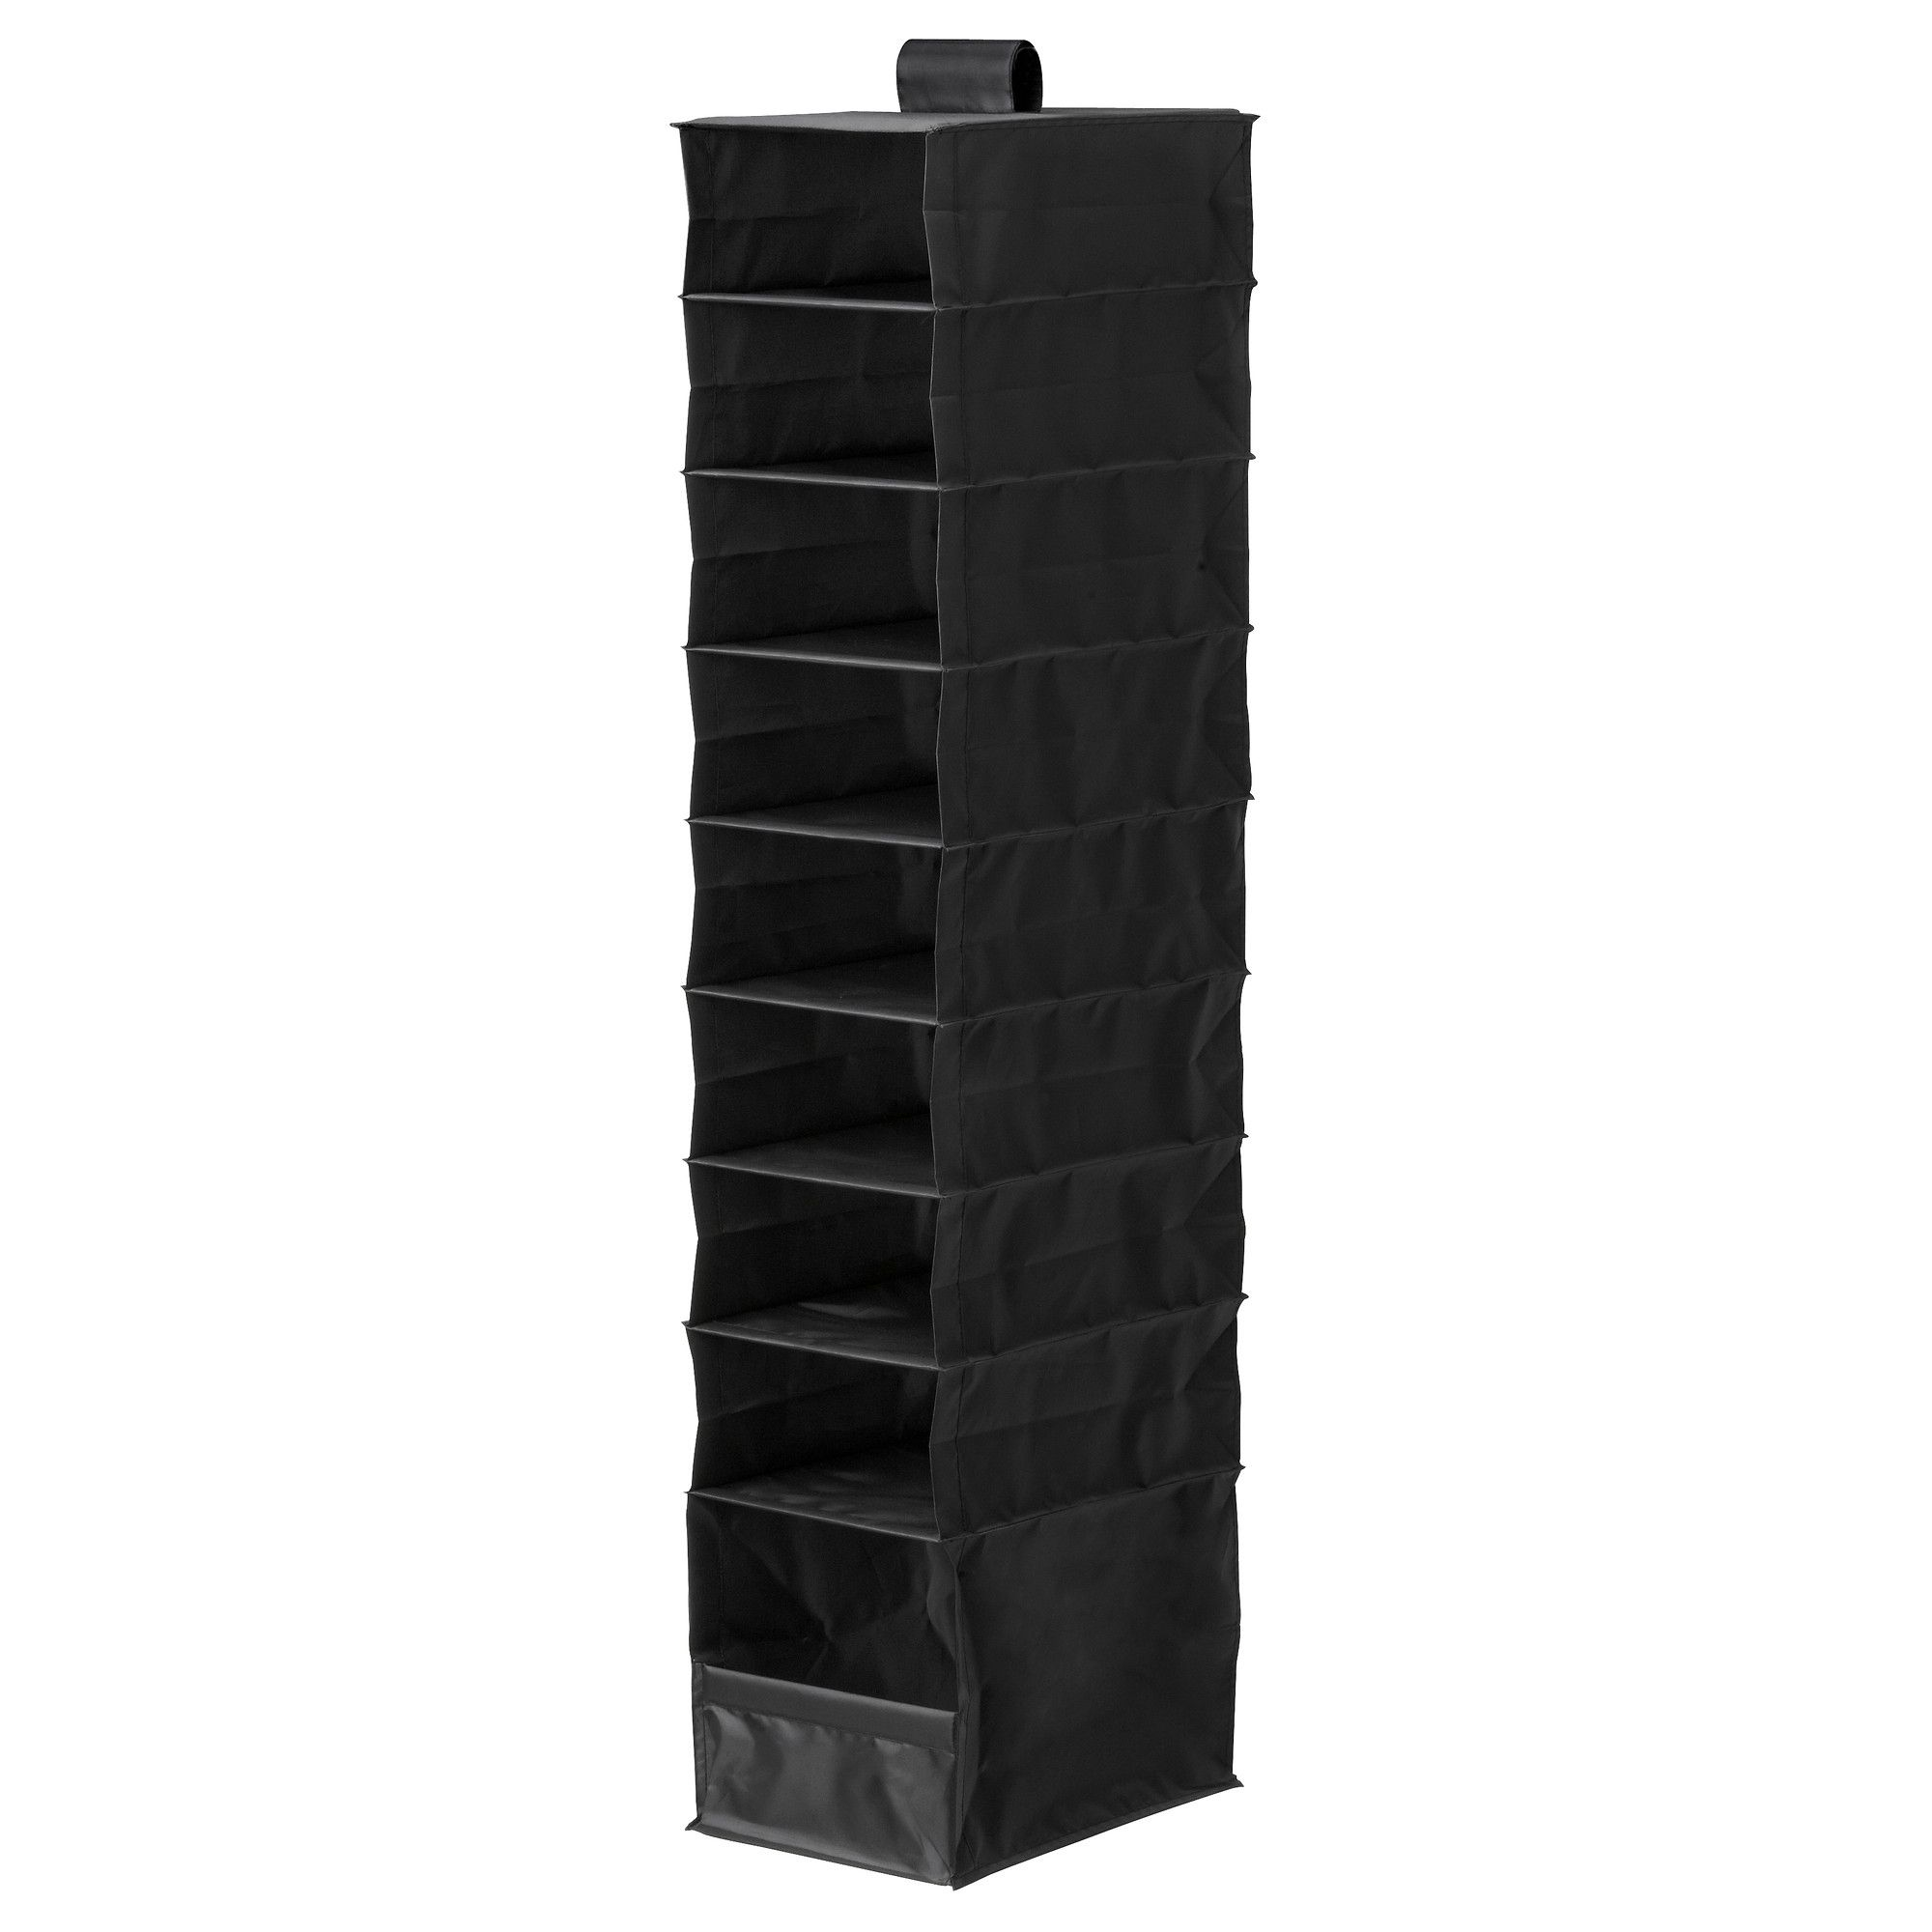 Ikea Skubb Organizer With 9 Compartments Black The Hook And Loop Fastener Makes It Easy To Hang Up Move